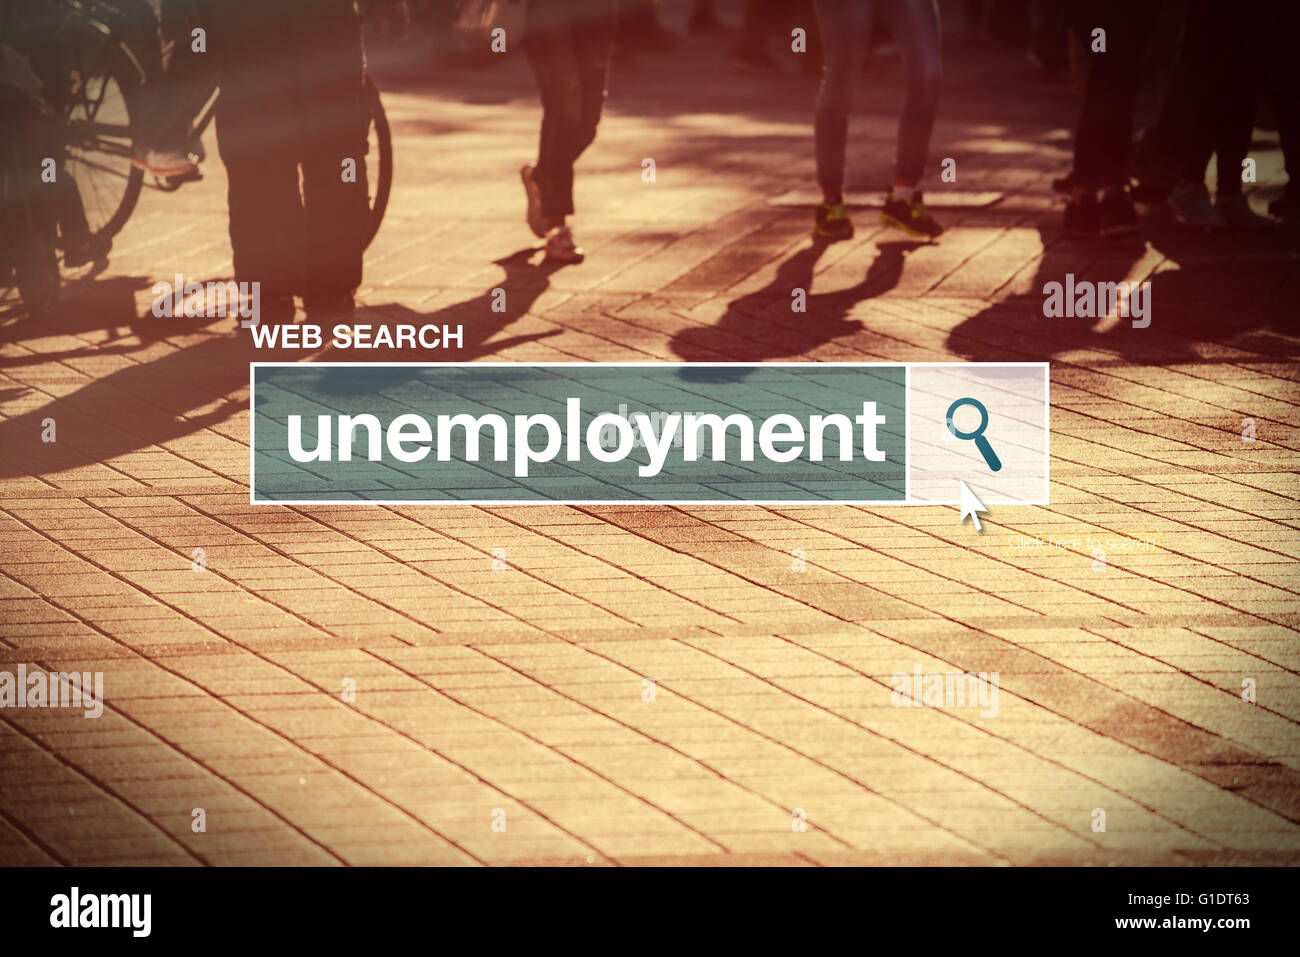 Unemployment web search bar glossary term on internet - Stock Image